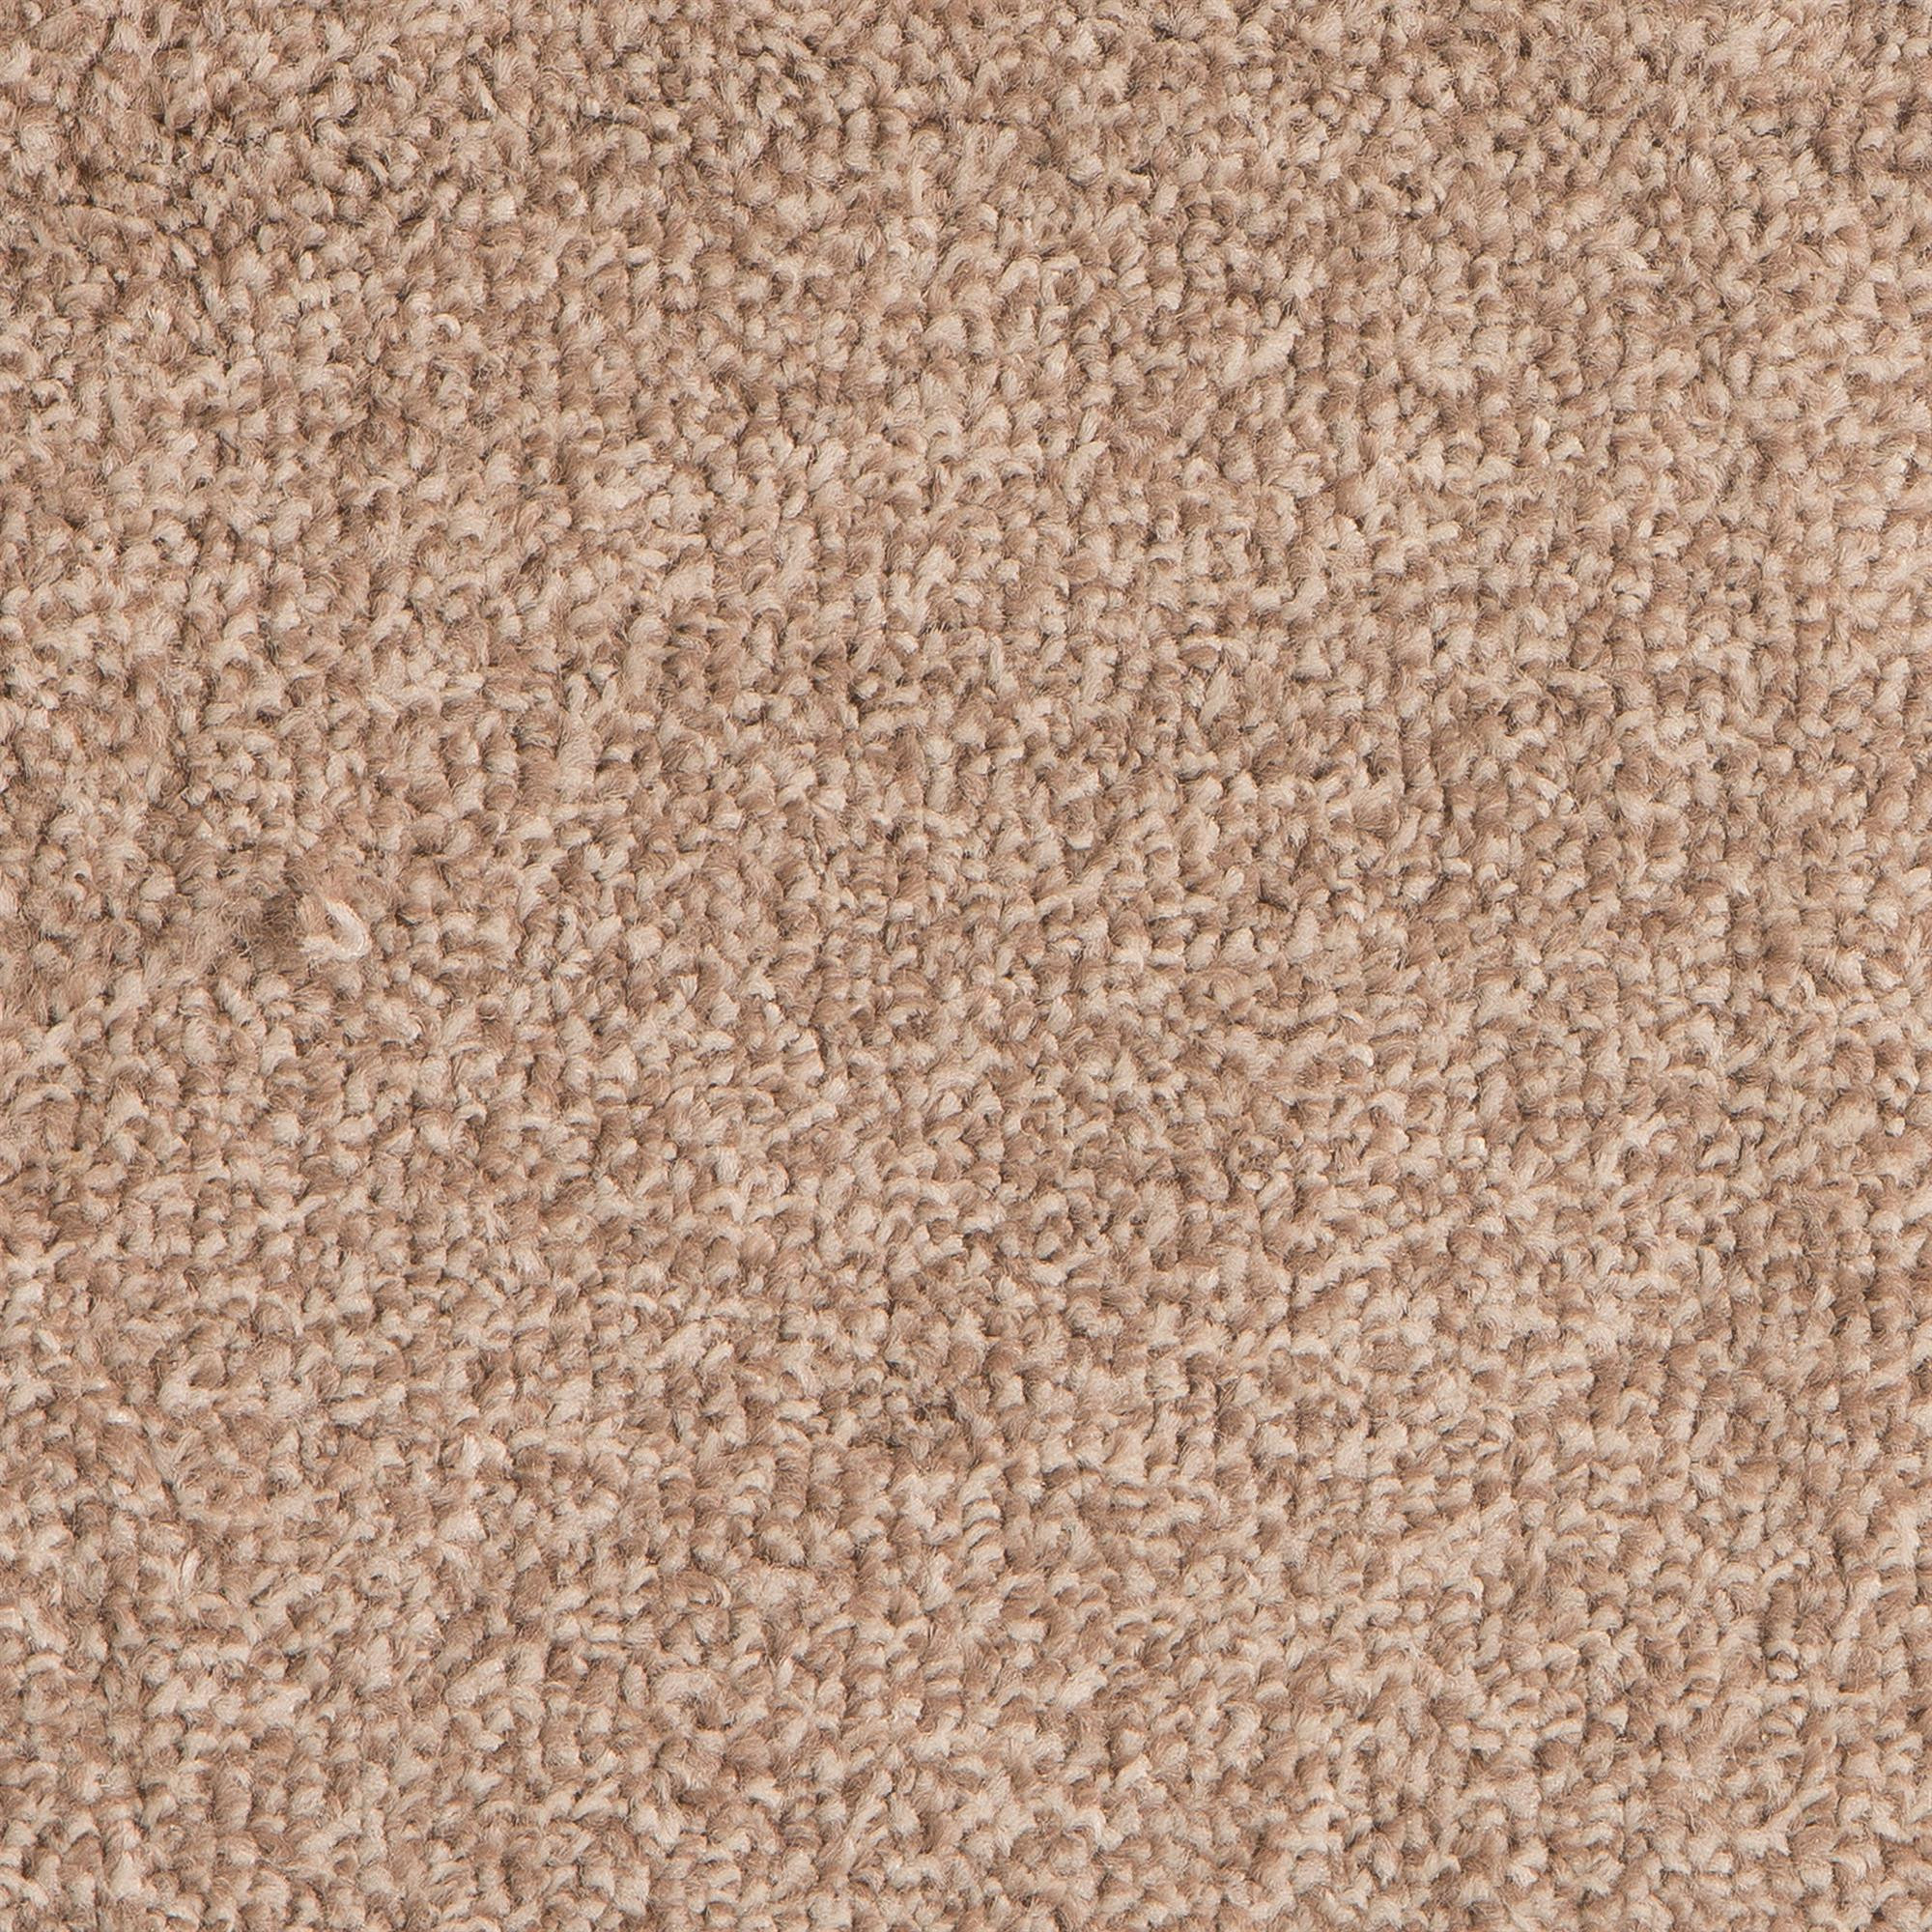 First Time Buyer Epic Carpet, Malt, swatch